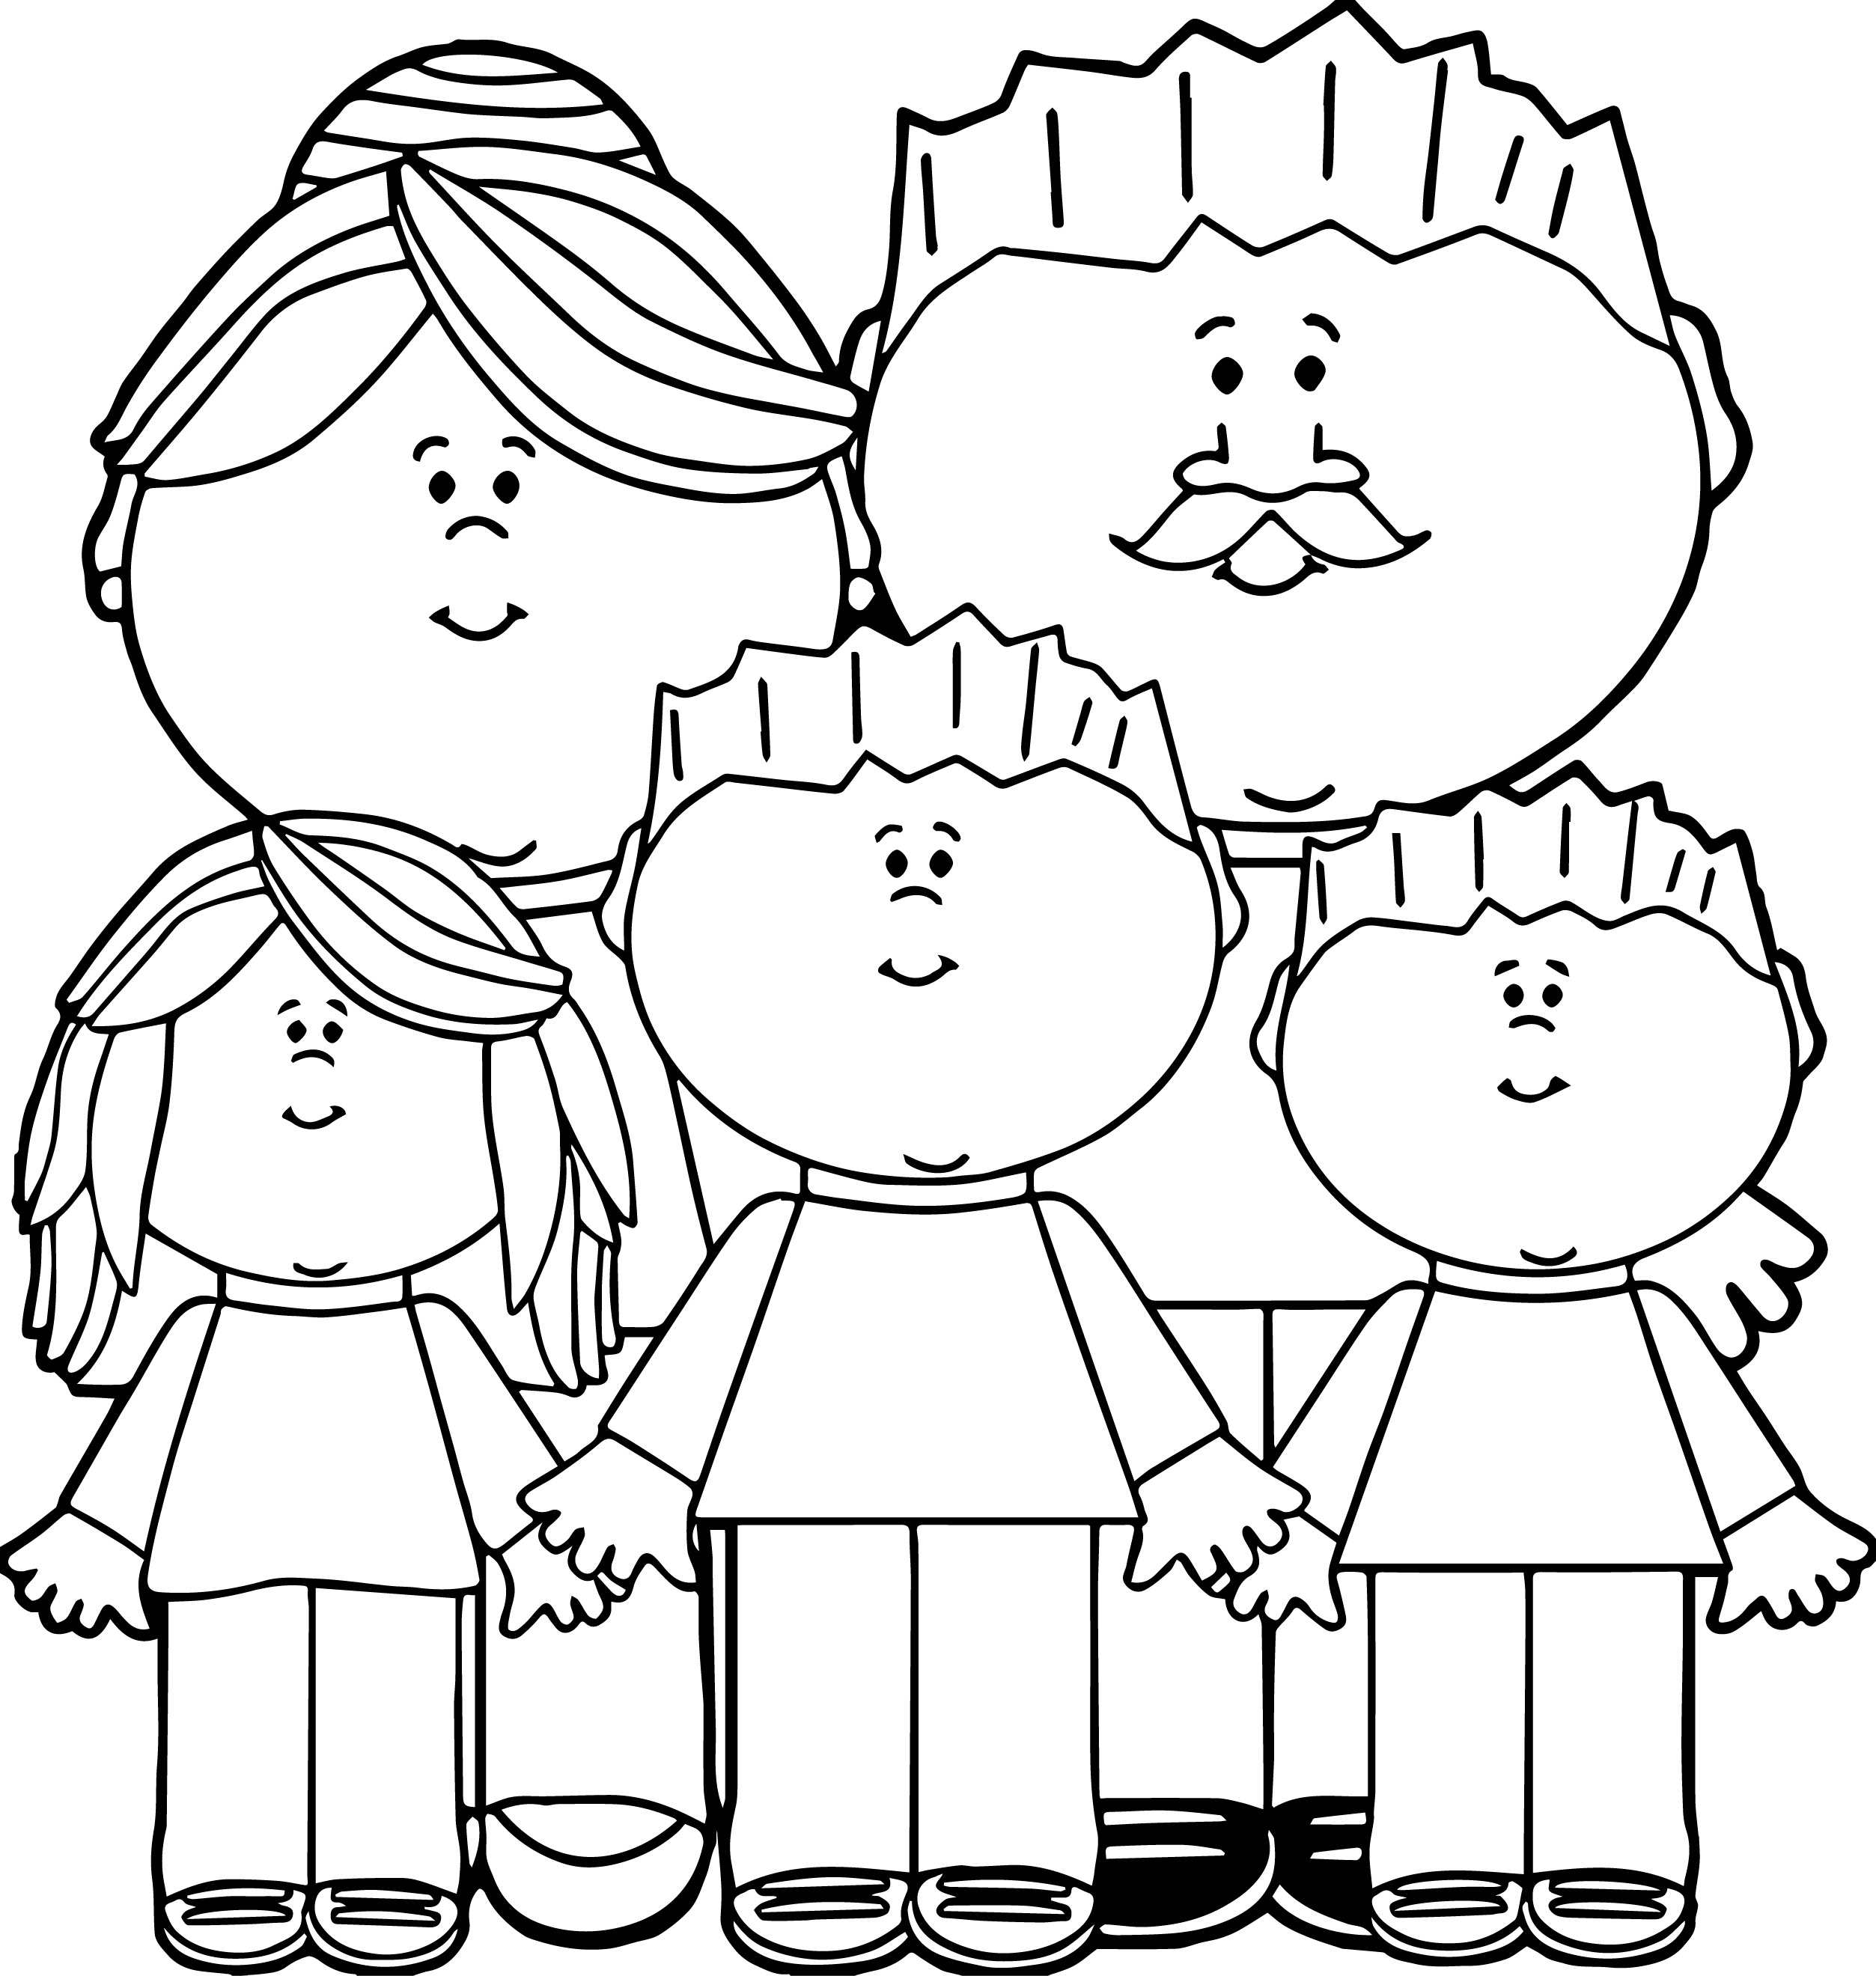 Father and mother clipart black and white png free stock Free Black Parents Cliparts, Download Free Clip Art, Free Clip Art ... png free stock